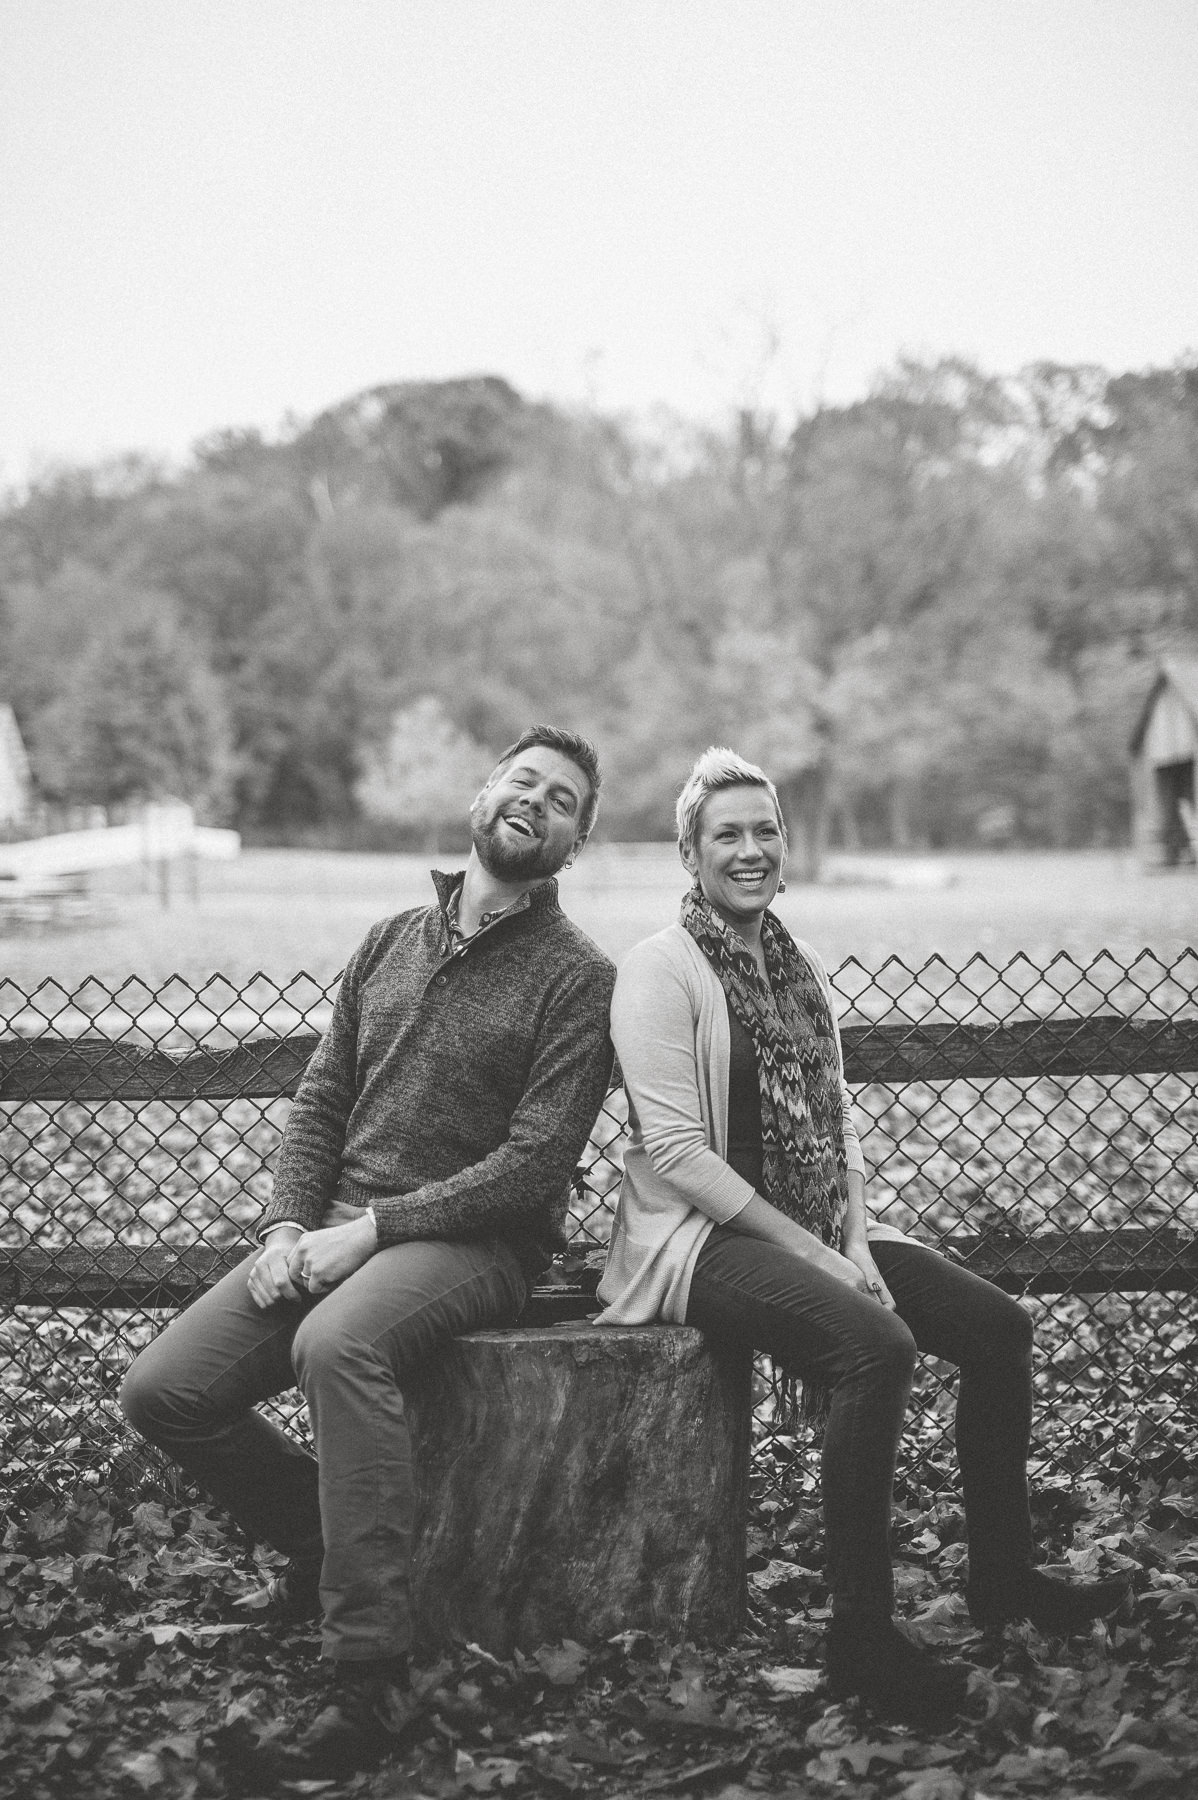 breighton-and-basette-photography-copyrighted-image-blog-betty-chad-and-company-family-shoot-007.jpg